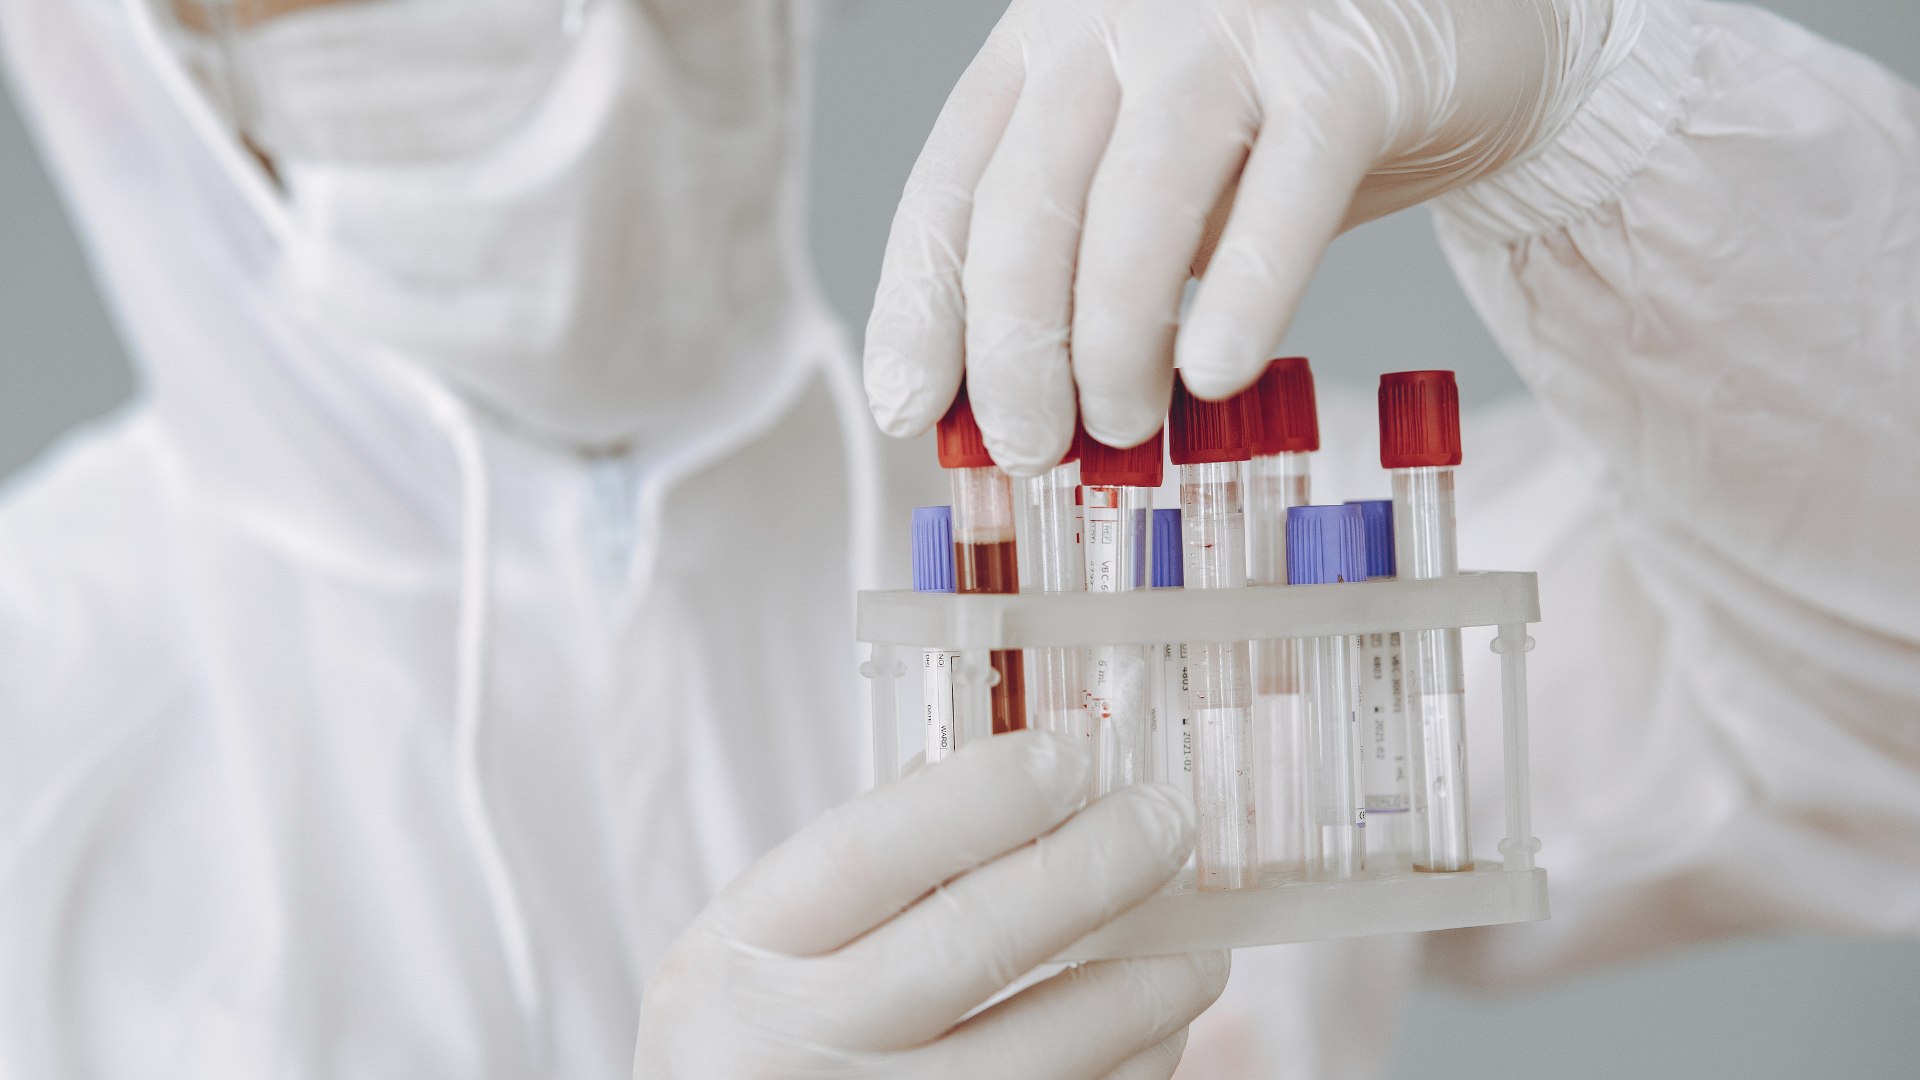 Blood Test May Help Diagnose Alzheimer's Disease